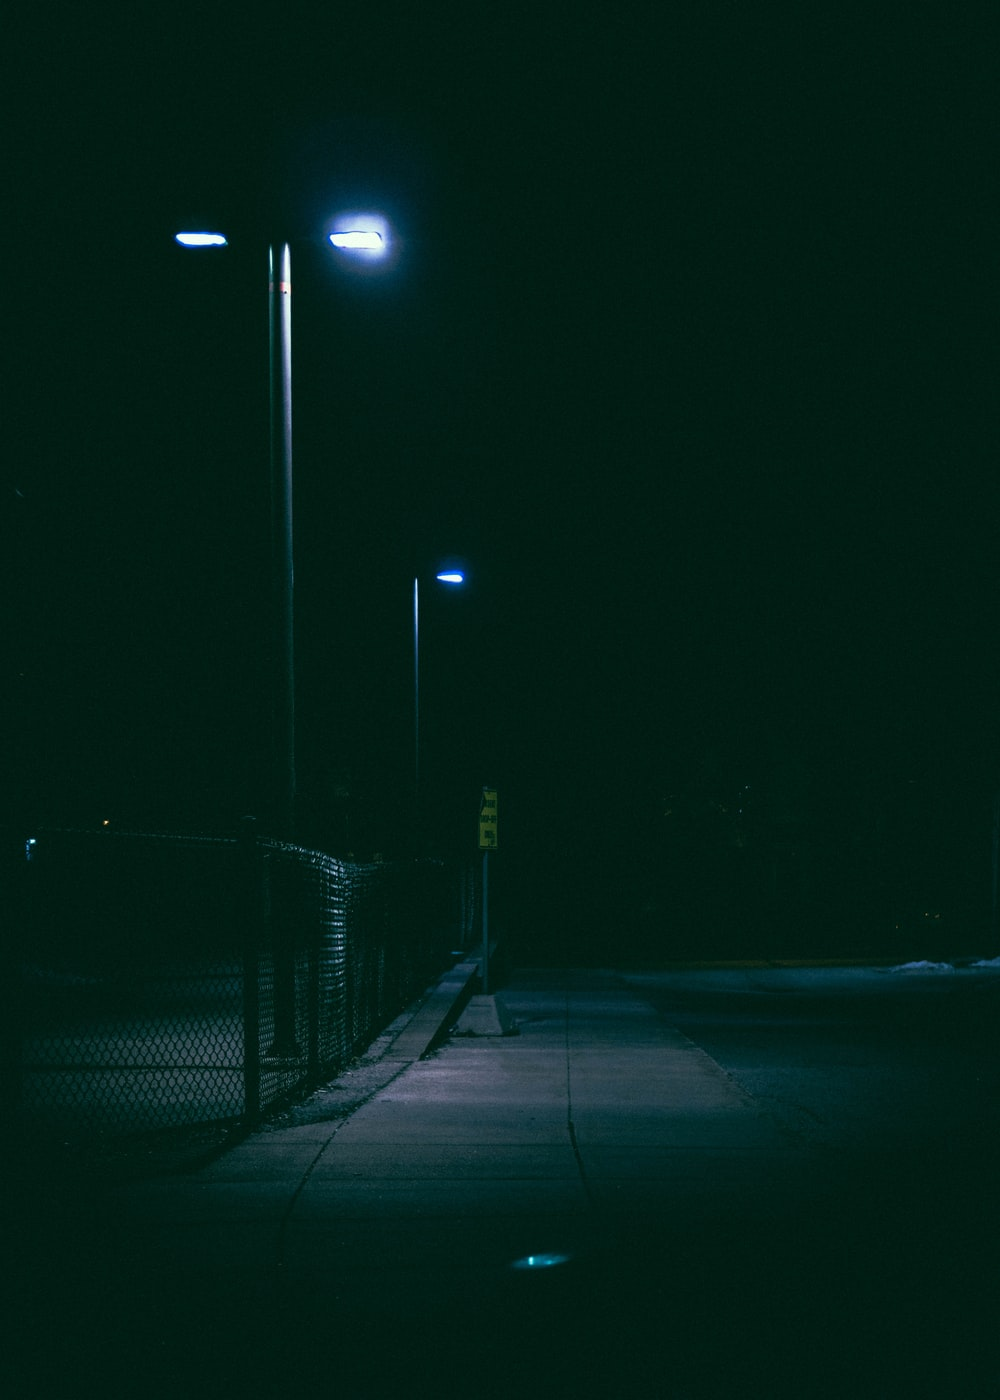 lighted street post at nighttime